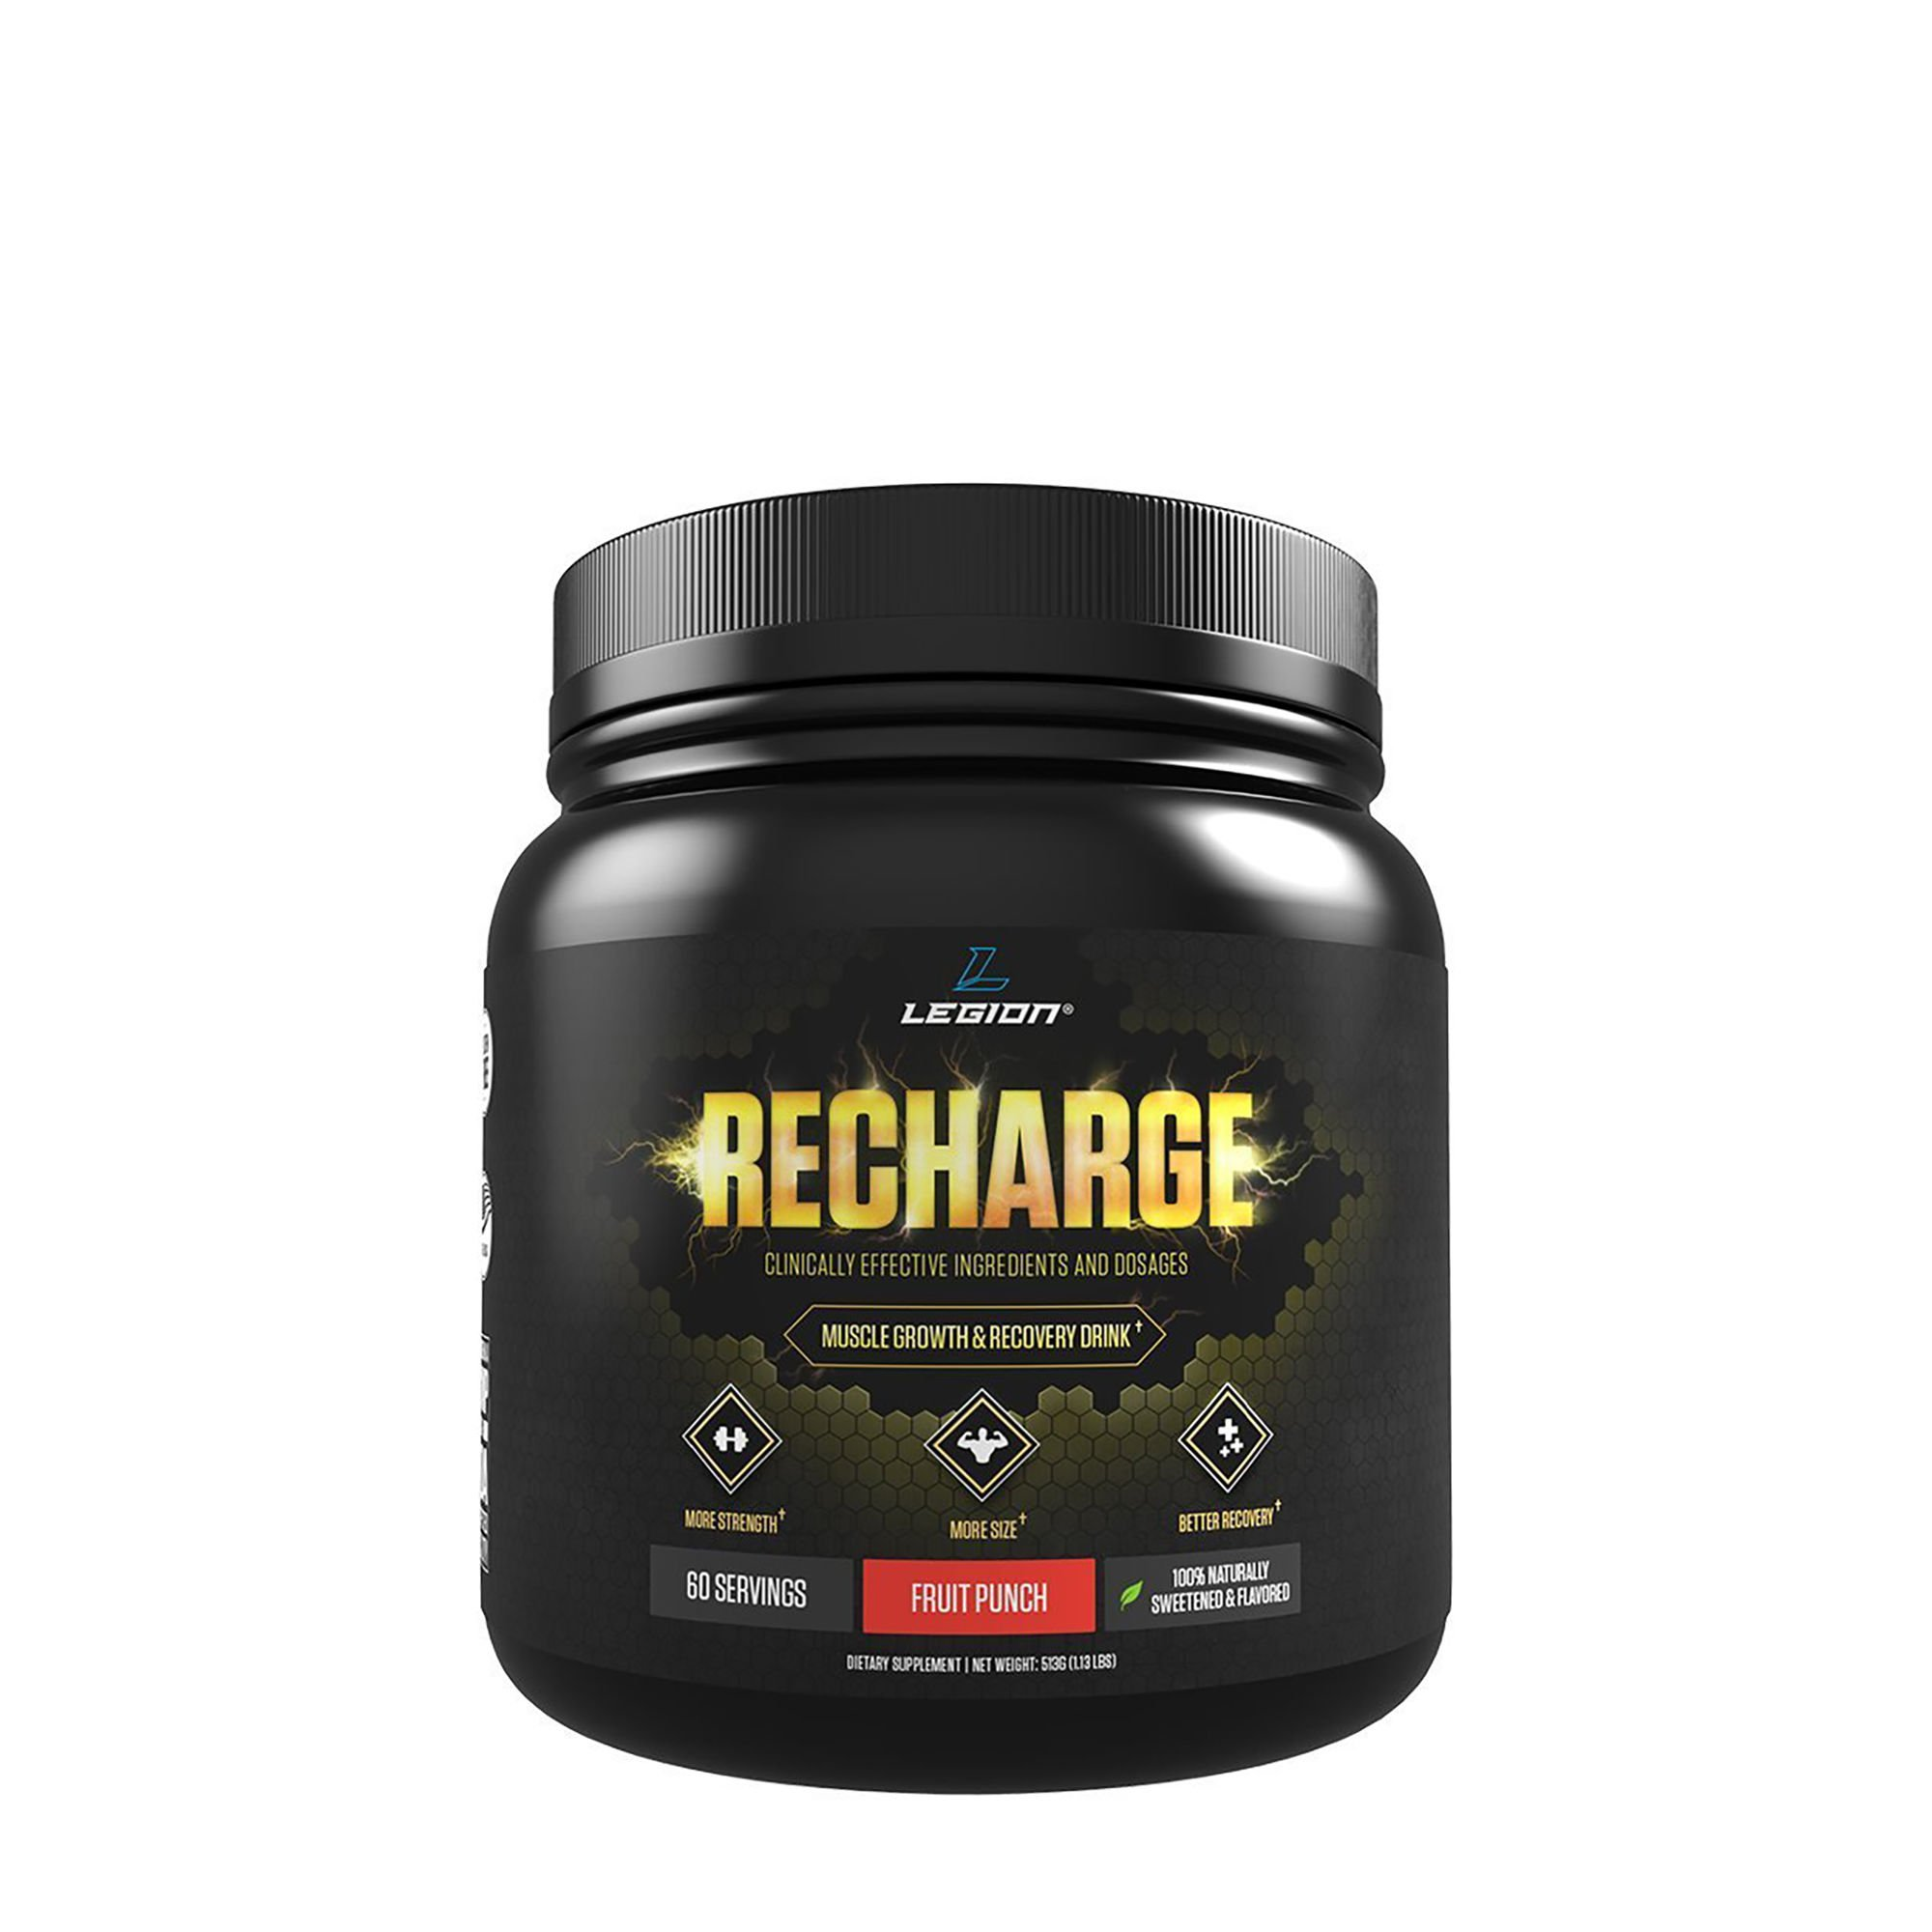 Legion Recharge Post Workout Supplement - All Natural Muscle Builder & Recovery Drink With Creatine Monohydrate. Naturally Sweetened & Flavored, Safe & Healthy. Fruit Punch, 60 Servings